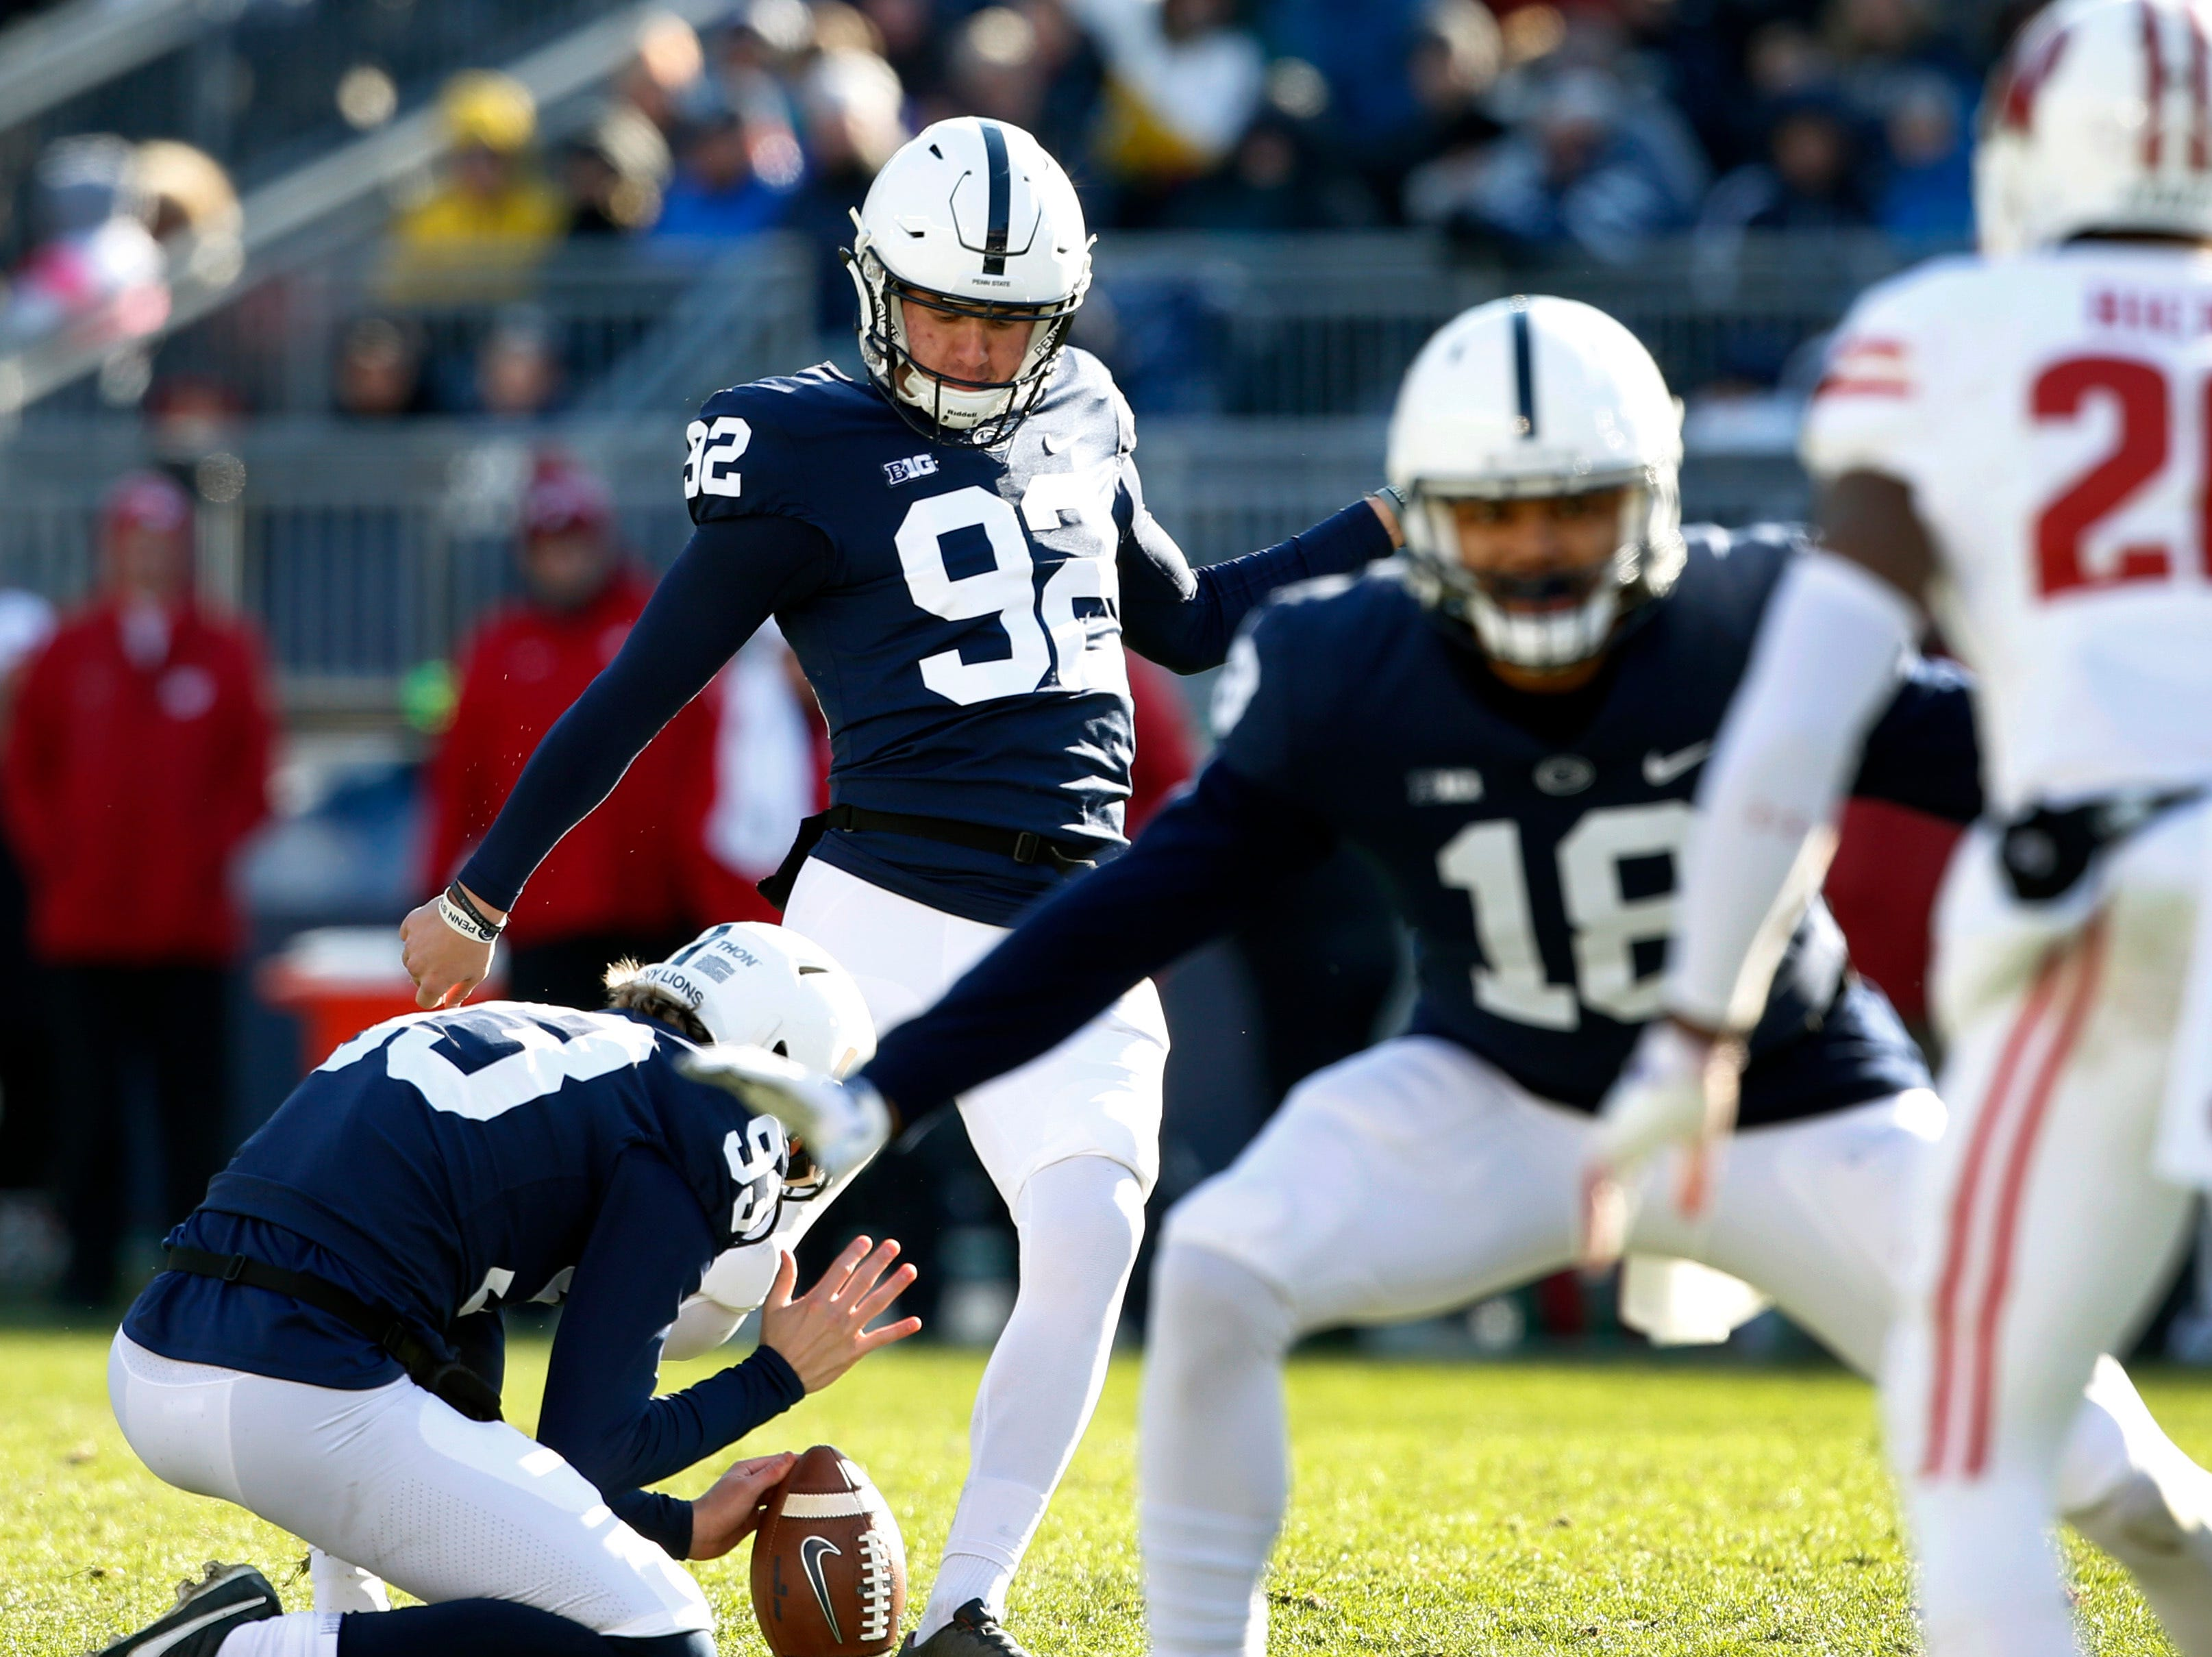 Photos: Penn State handles Wisconsin at home